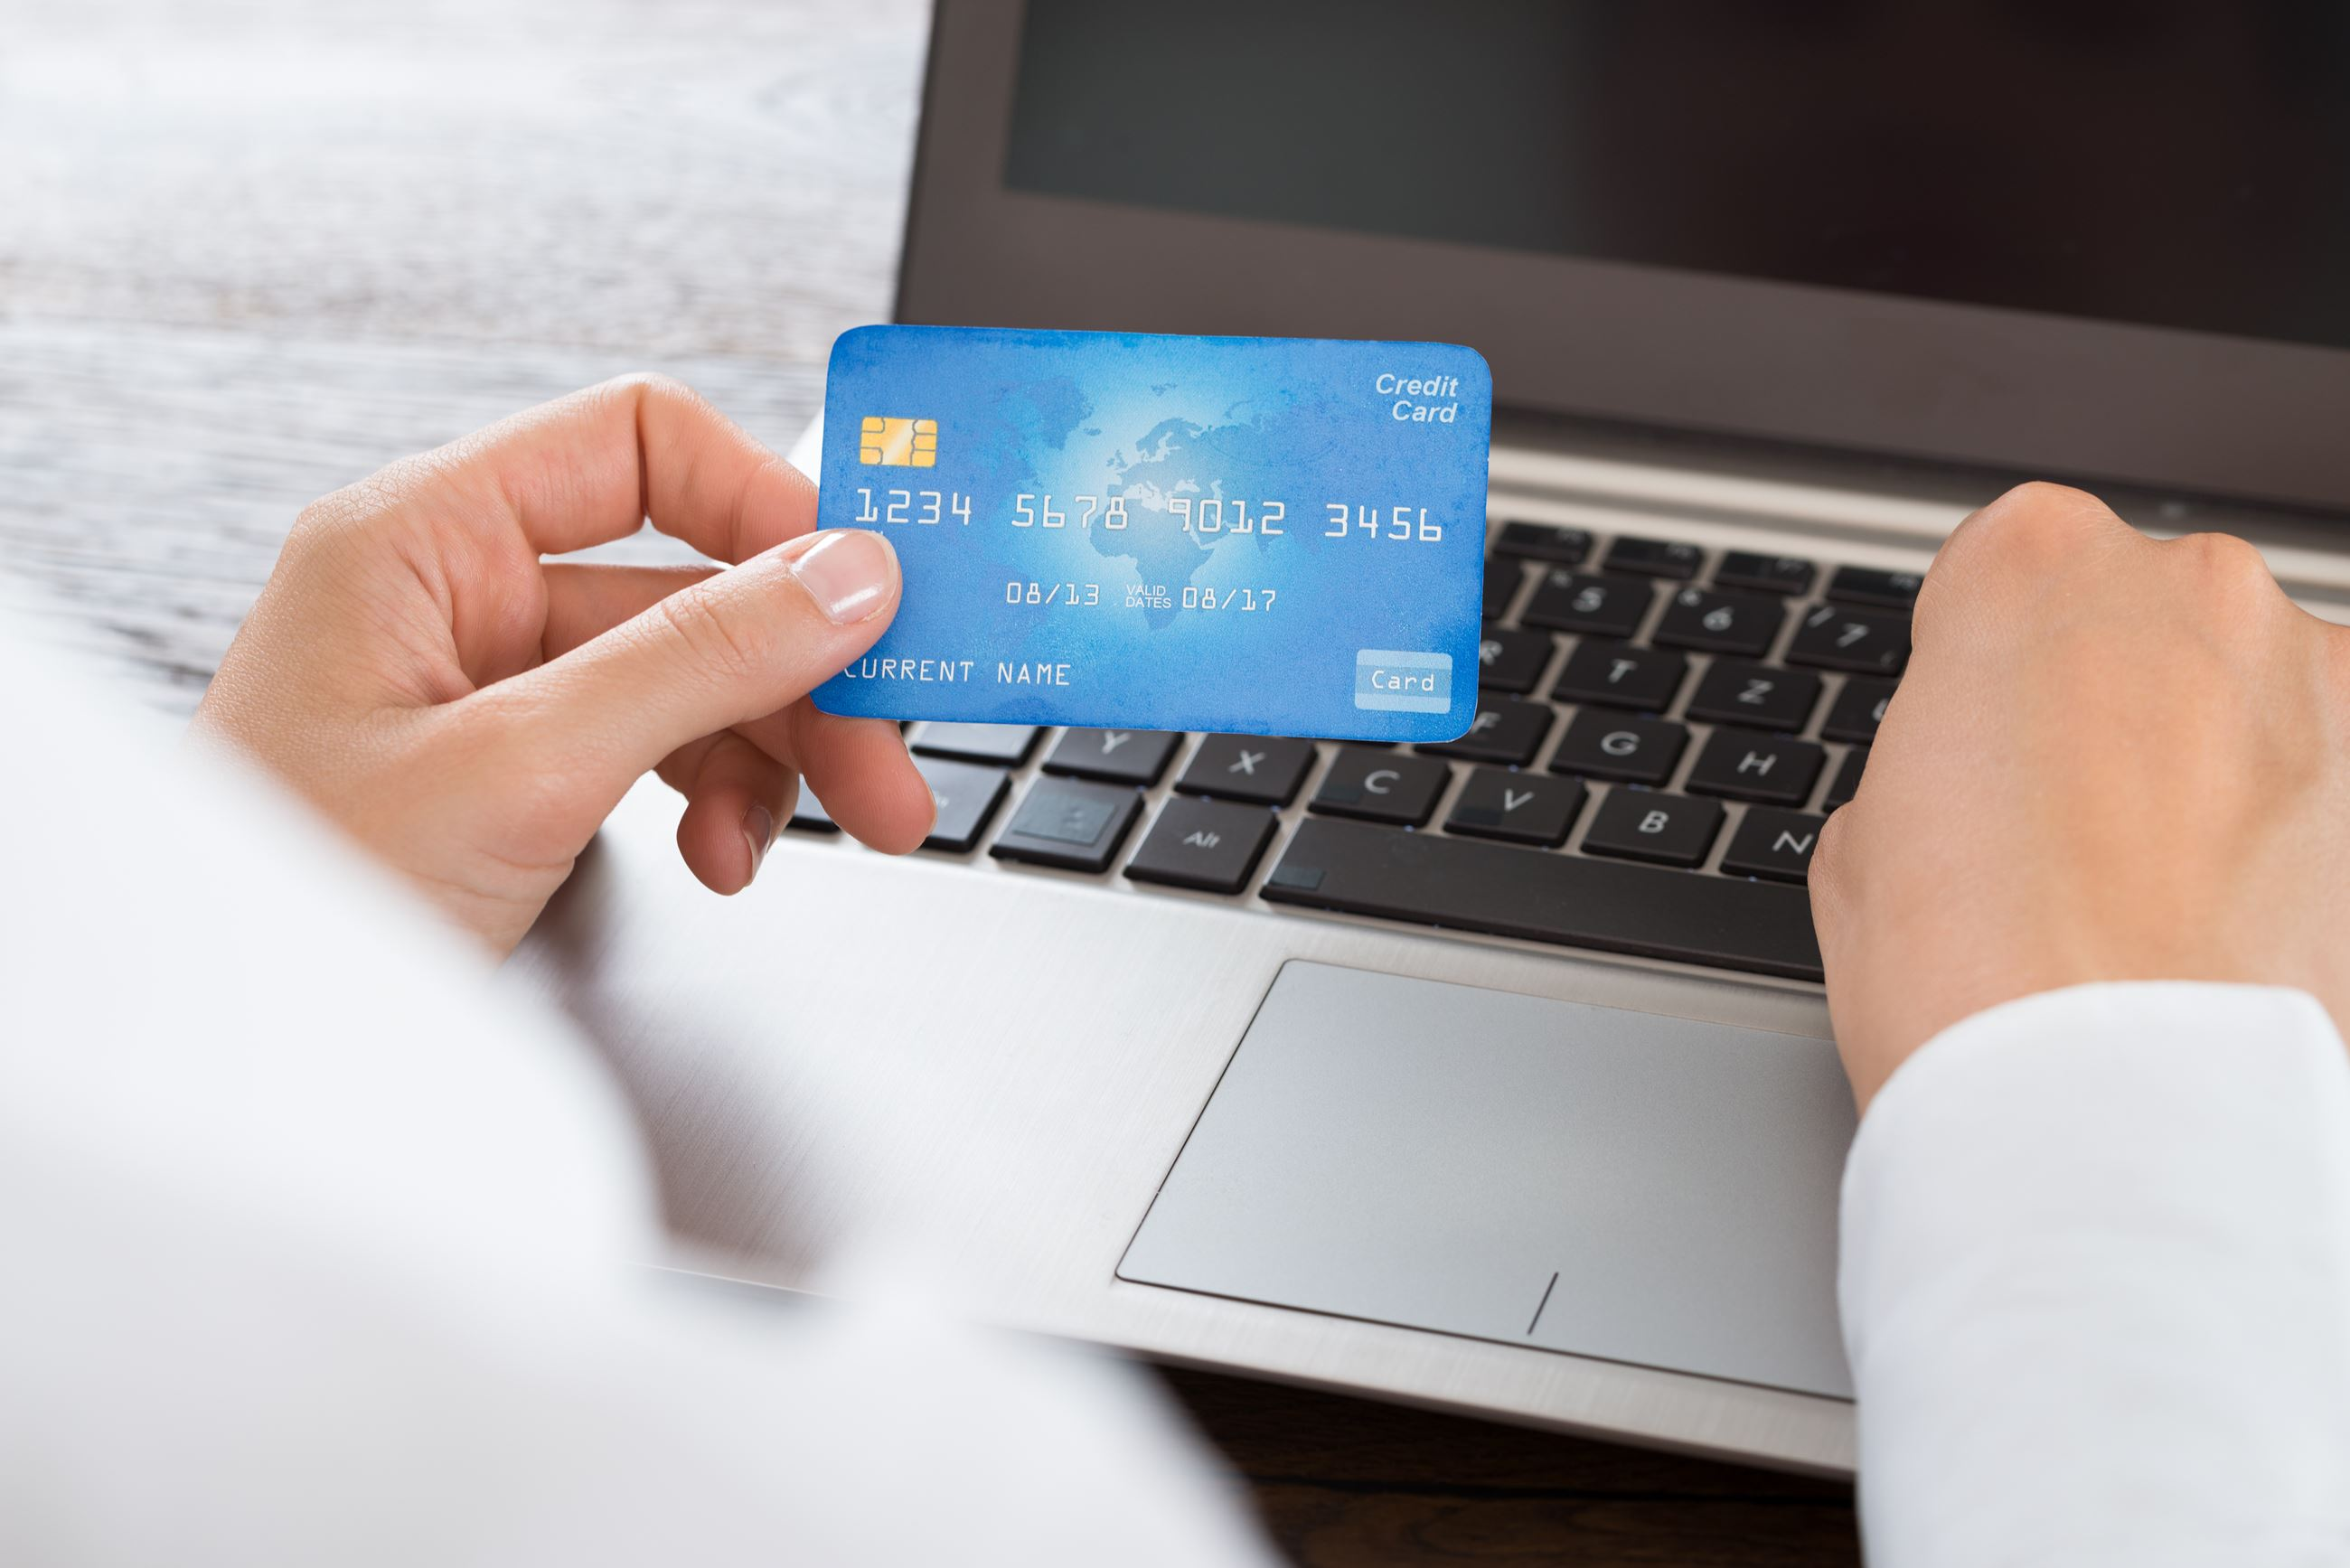 Credit Card convenience fees